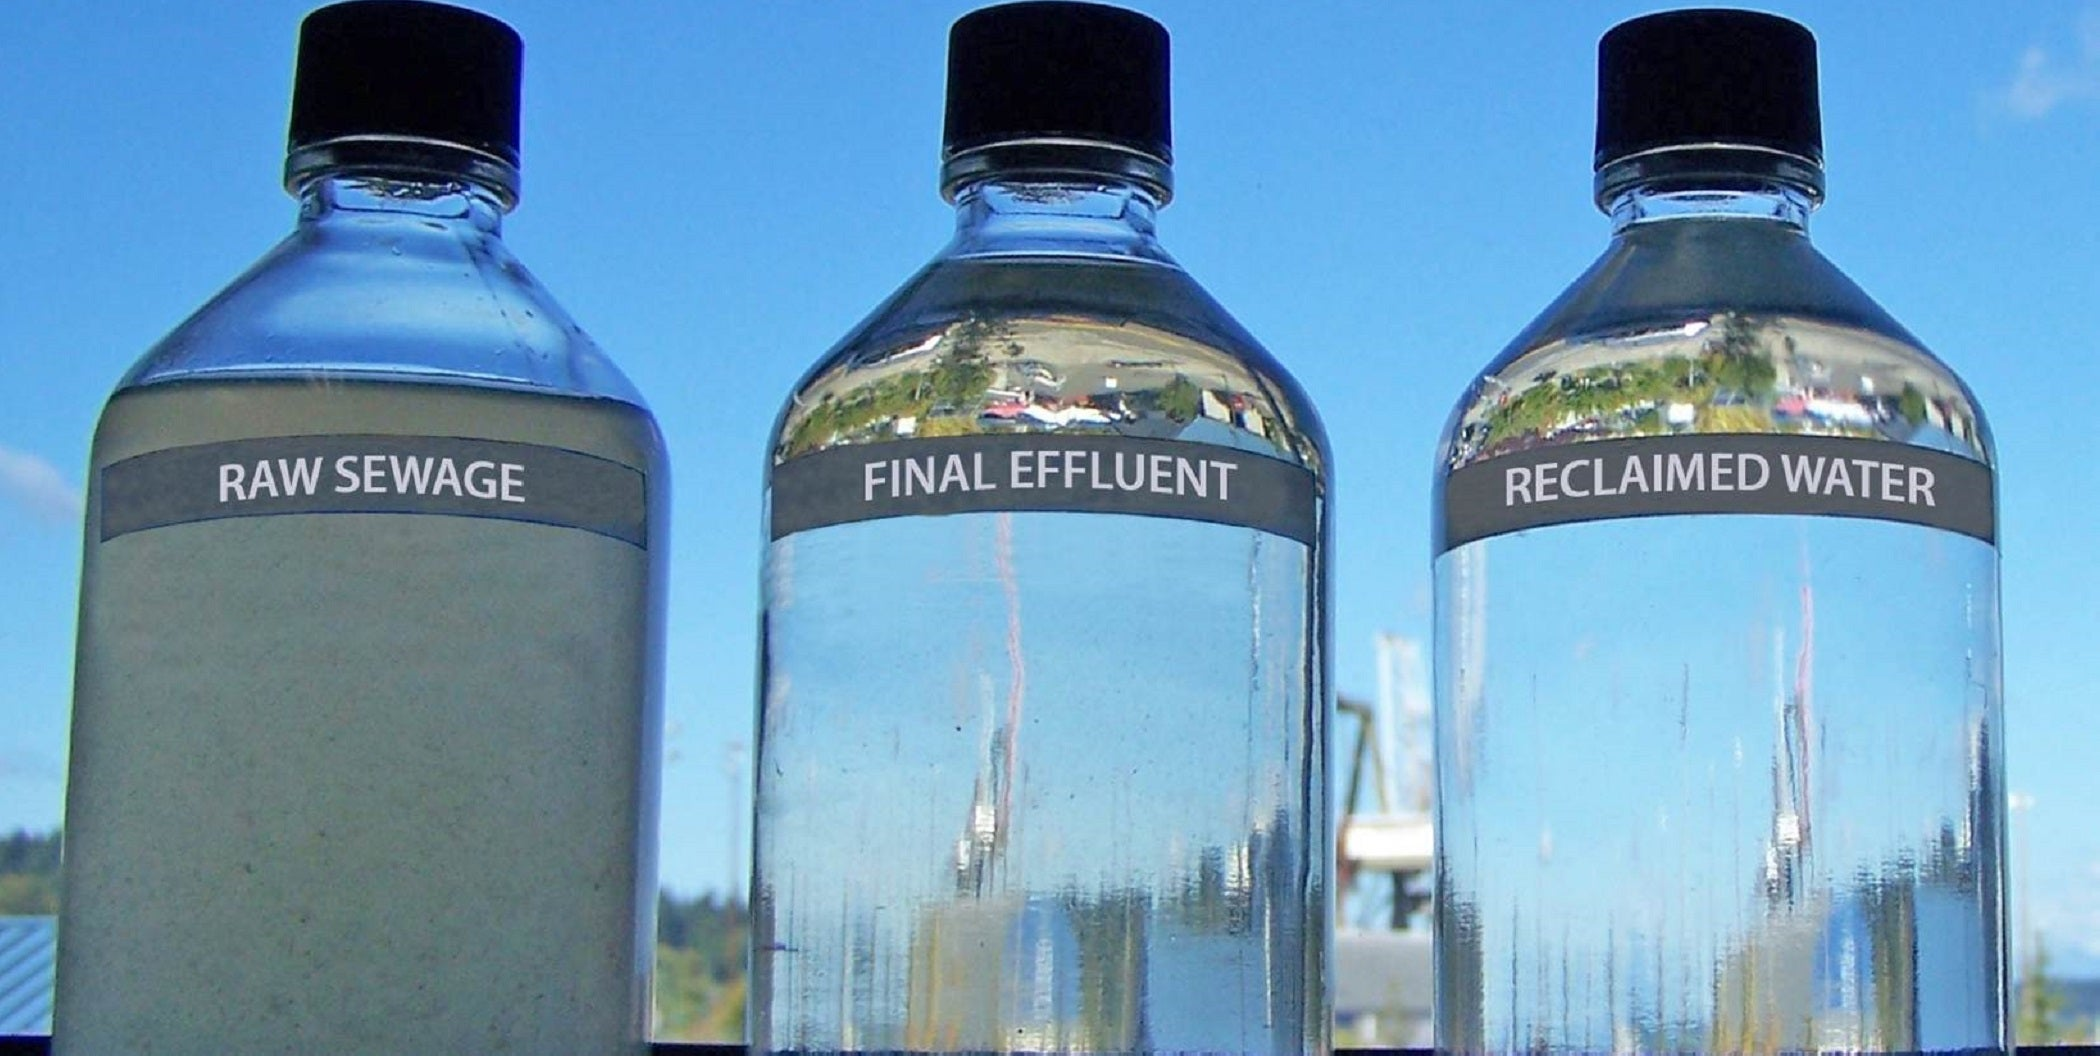 Aquifers to Store Reclaimed Water: Nature provides an ...